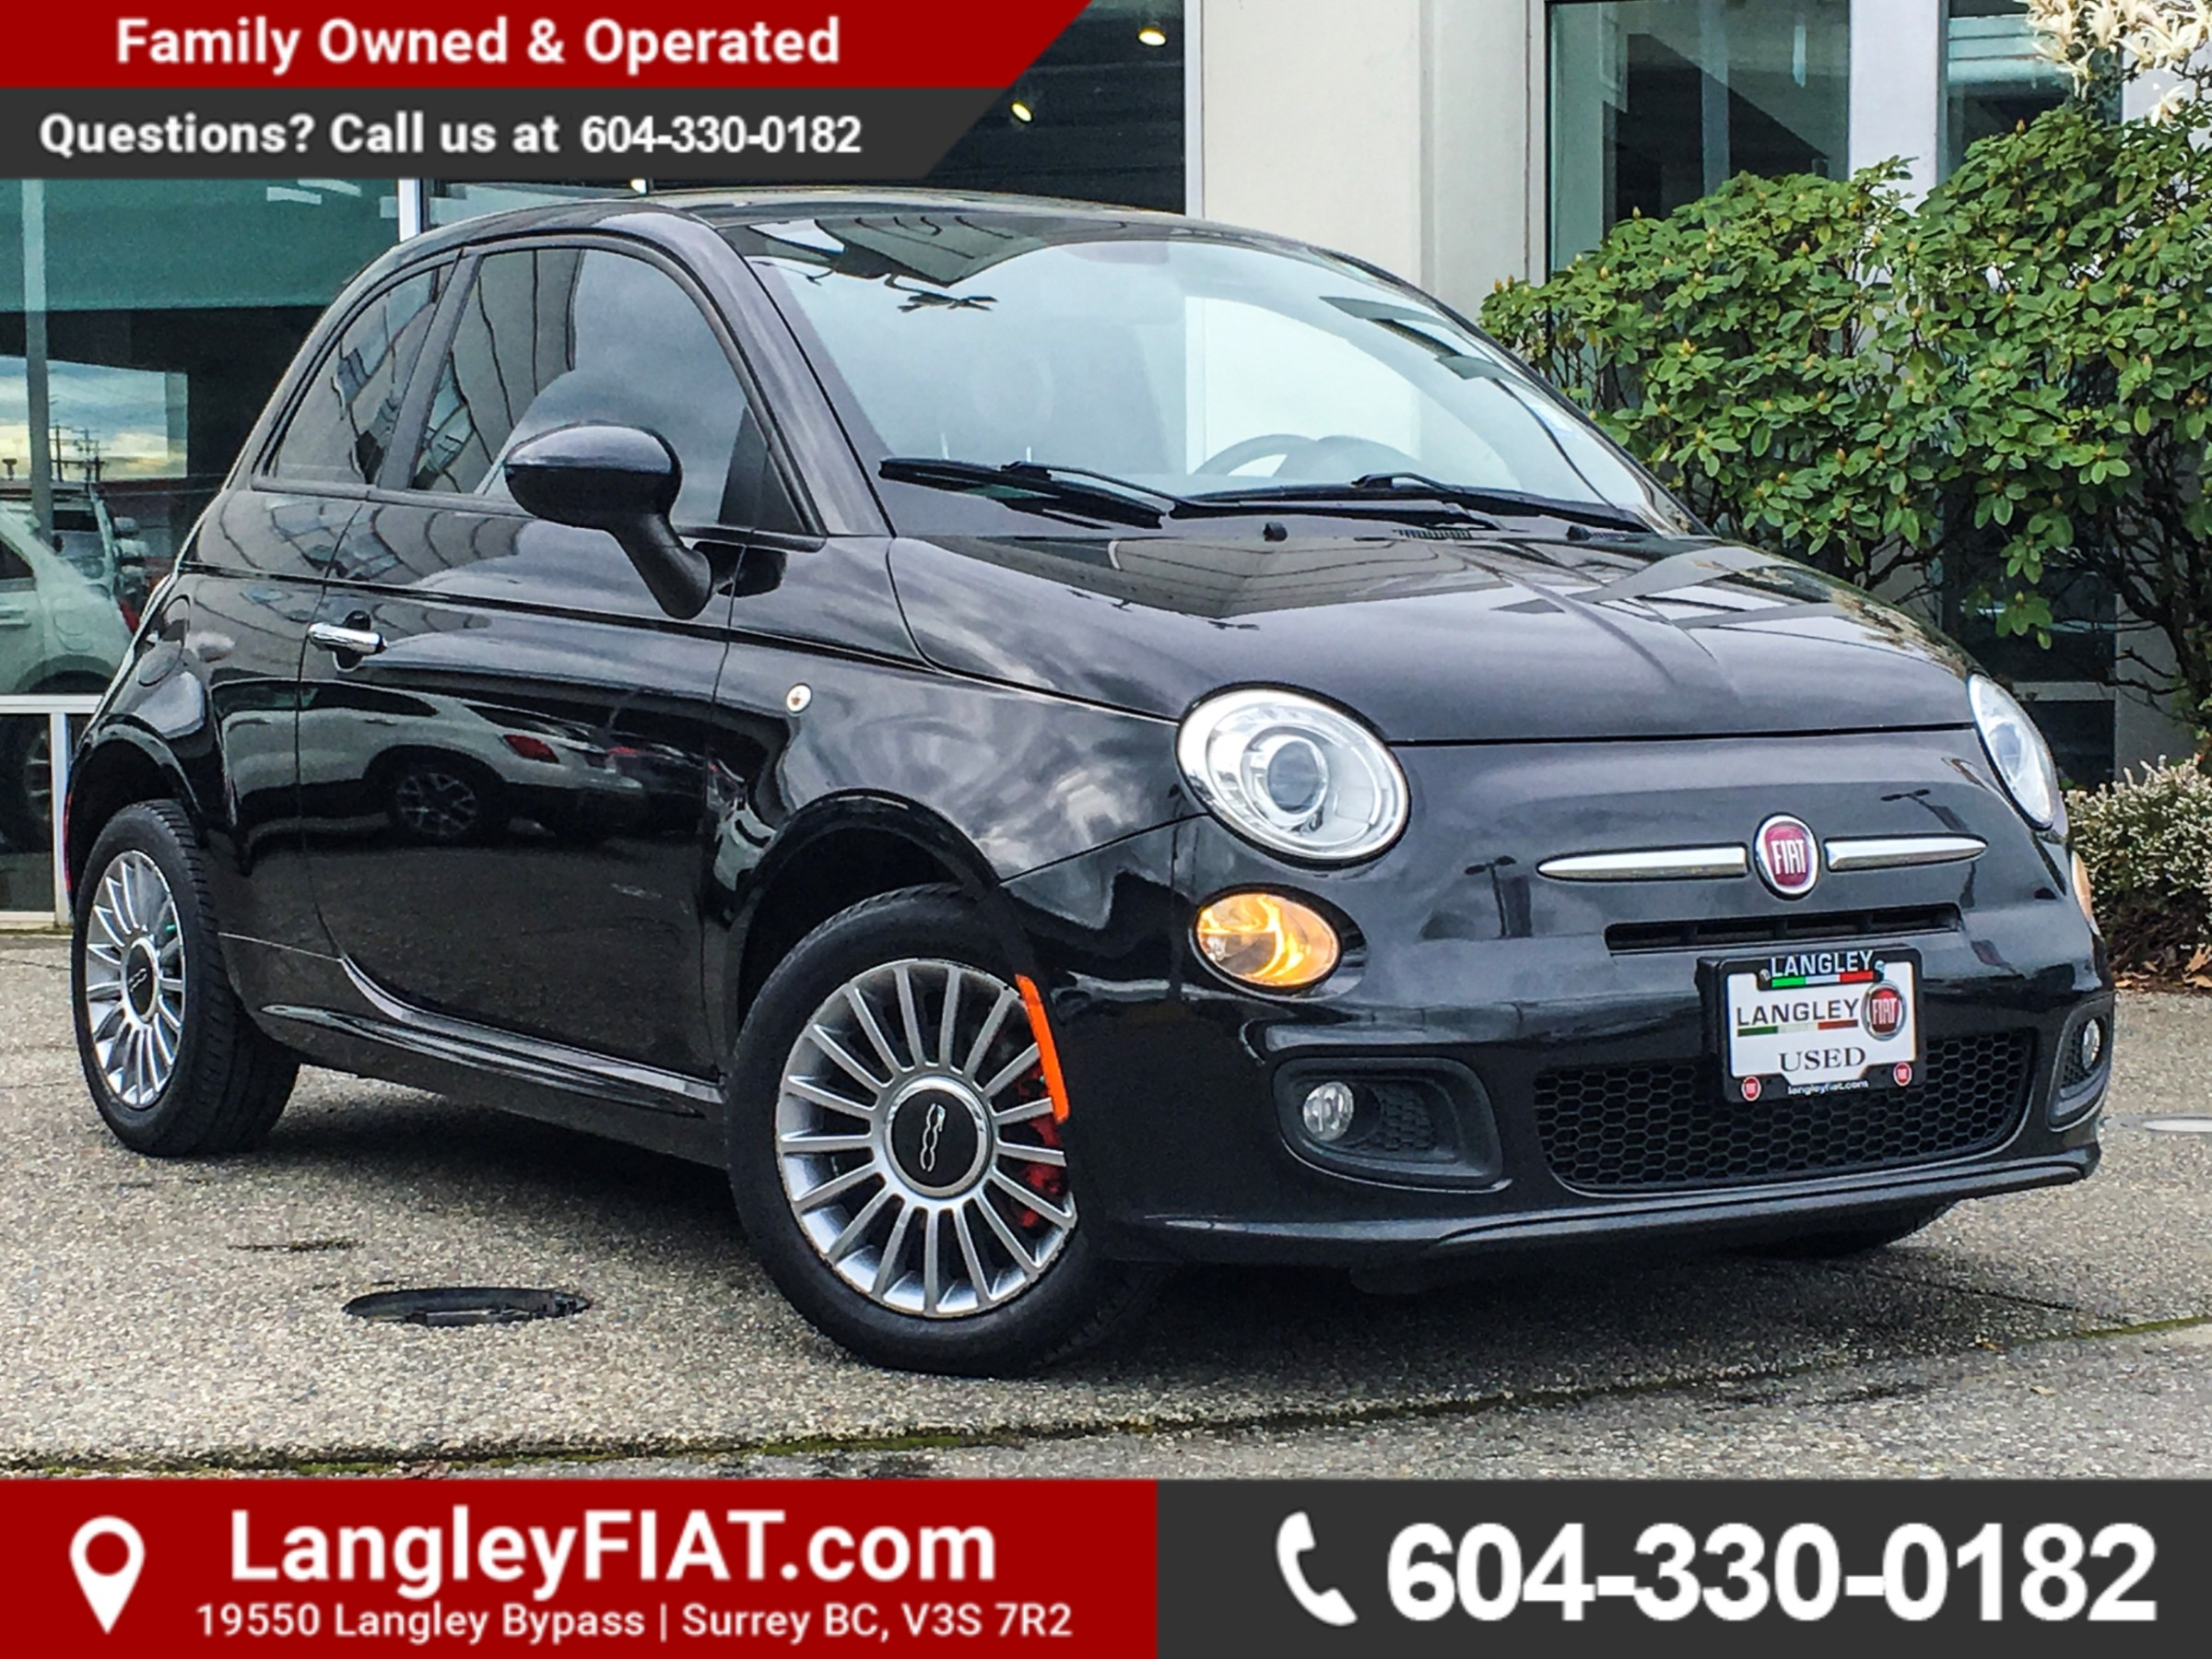 Langley FIAT: Used Cars, Trucks and SUVs, Trade-ins | British Columbia